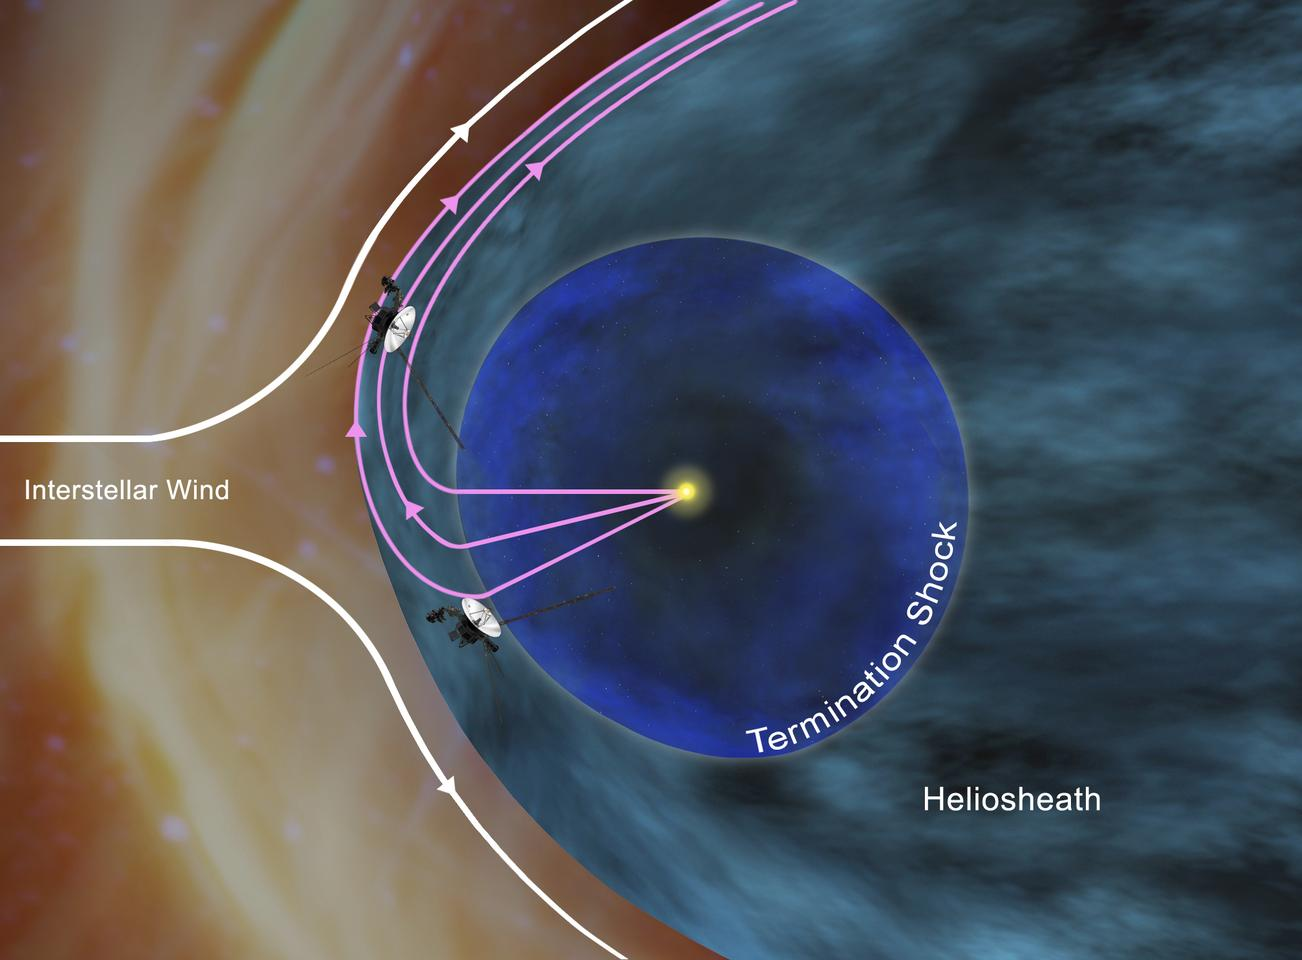 Voyager probes in the heliosheath